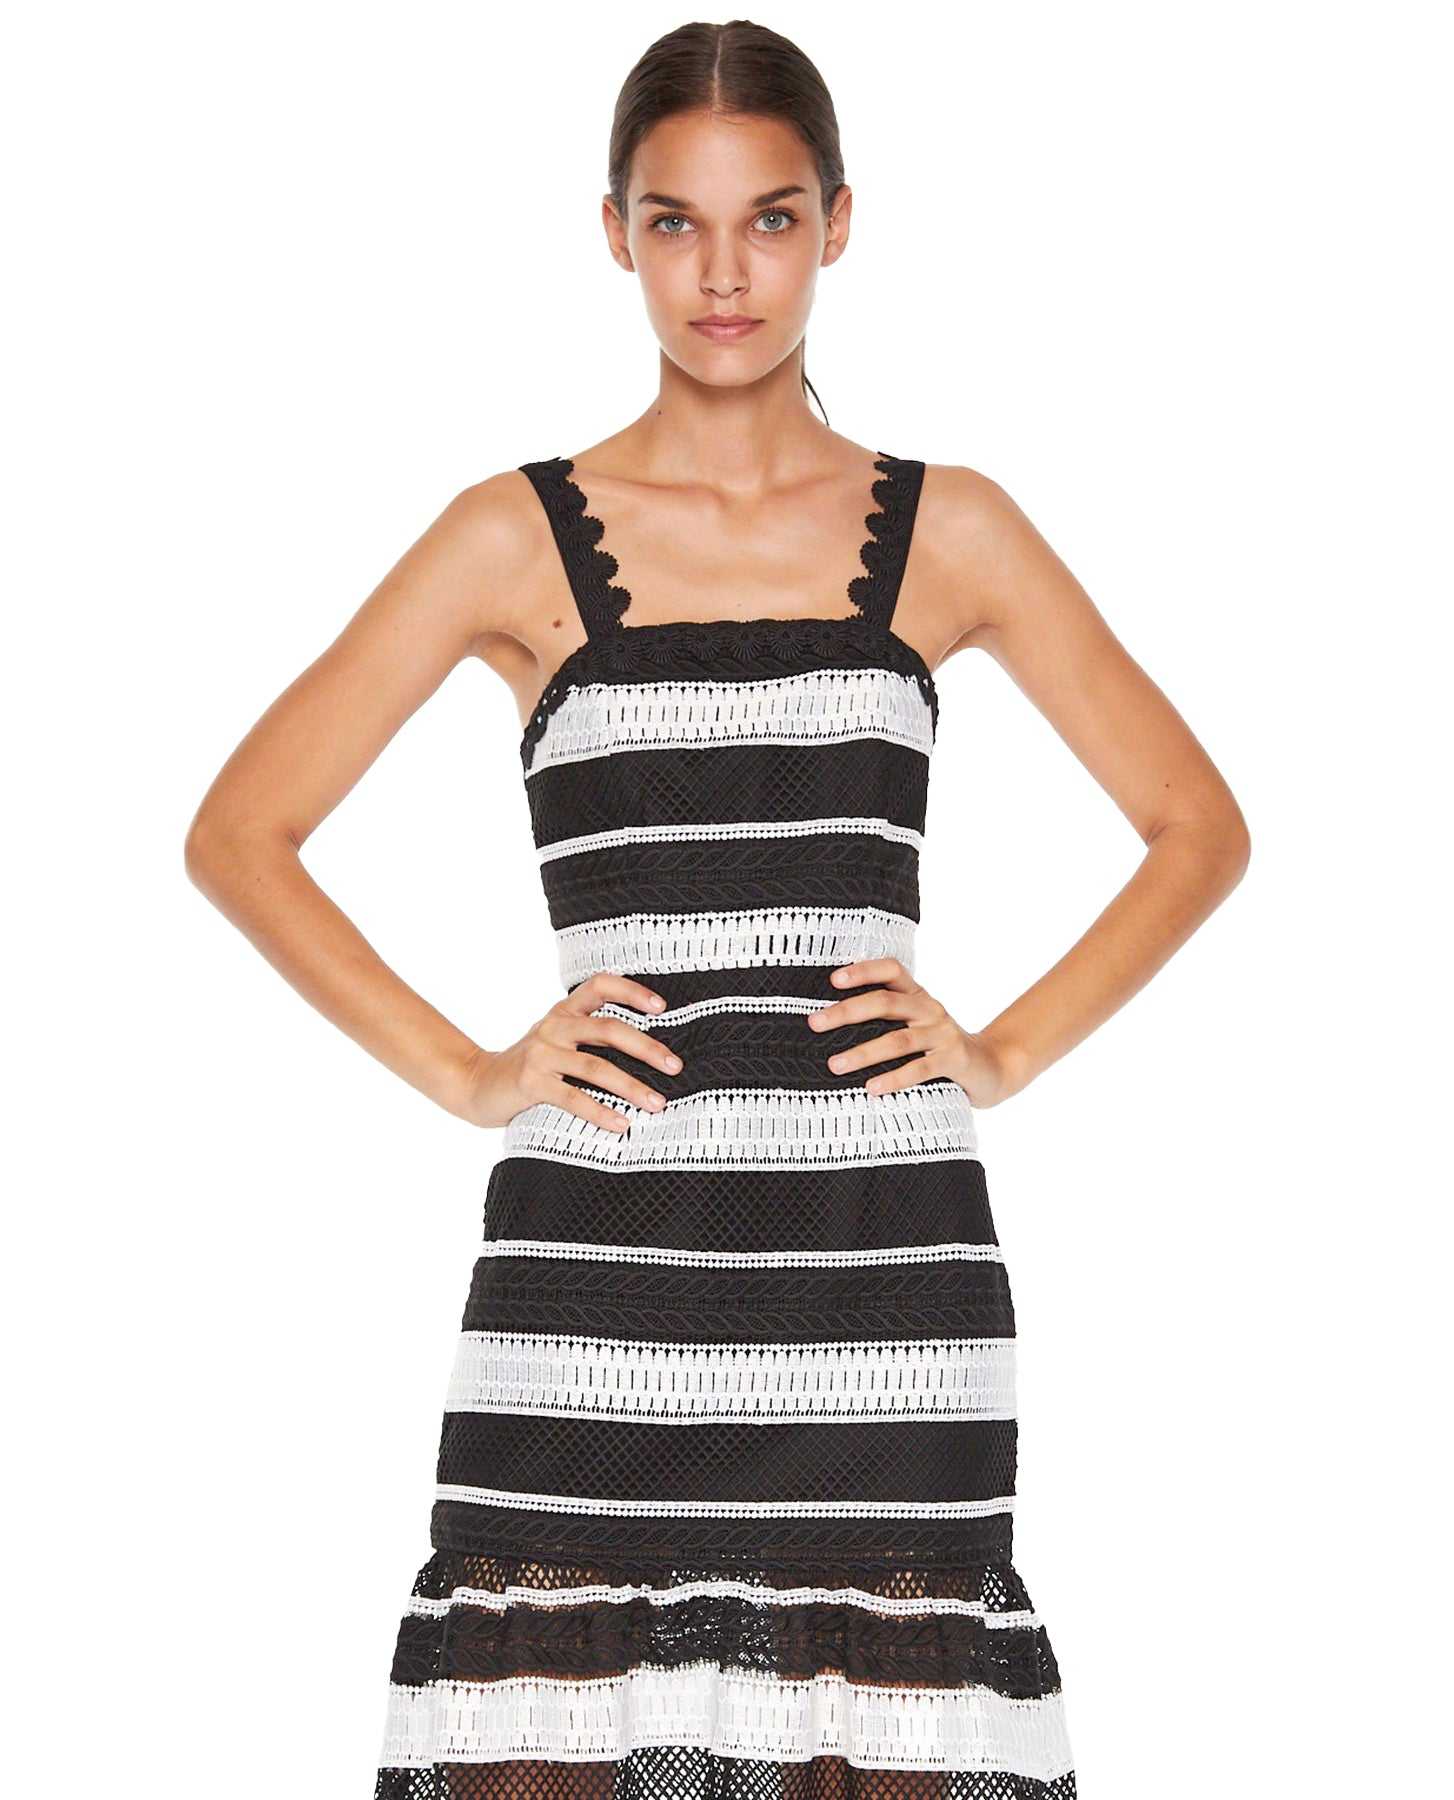 TALULAH DARLING WHITE AND BLACK MIDI